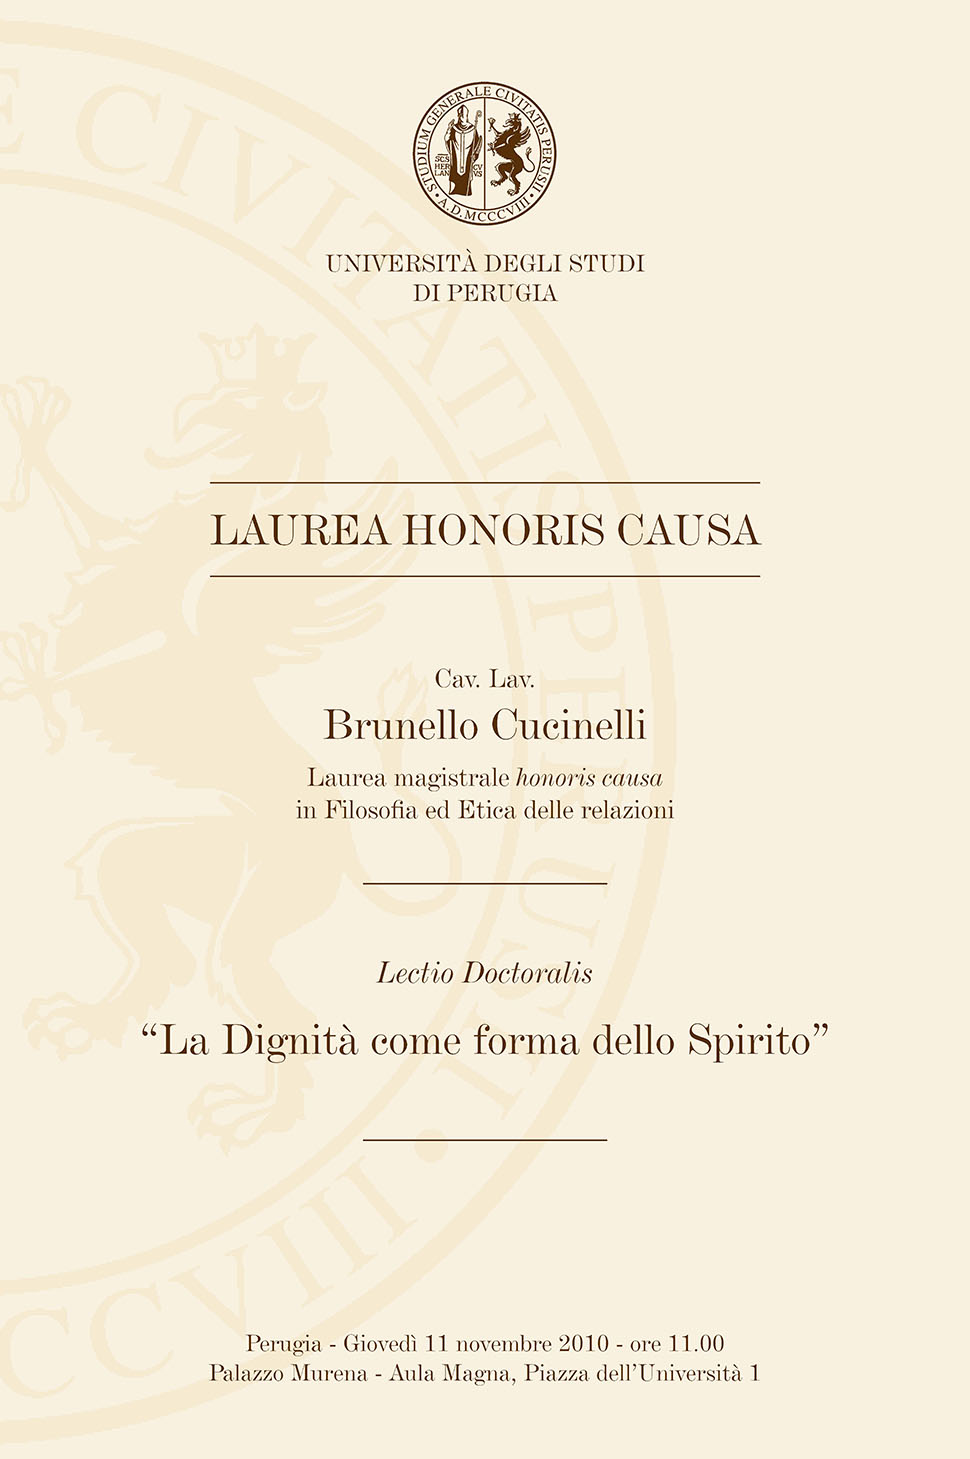 2010 - Laurea Honoris Causa